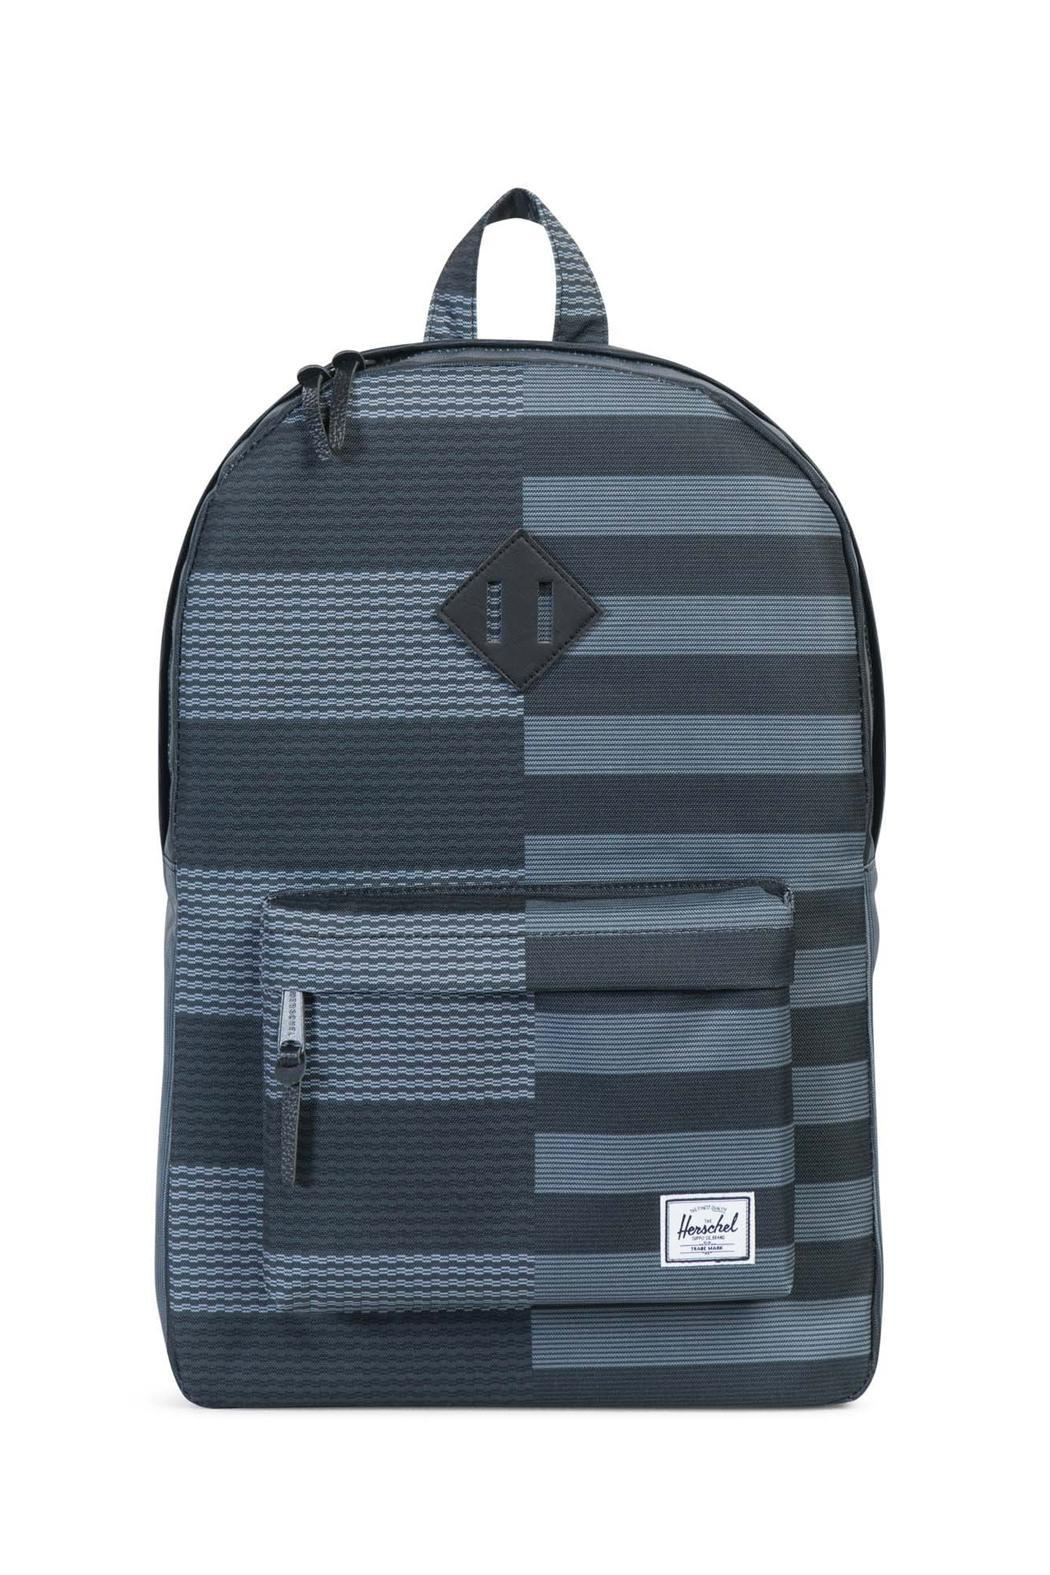 Herschel Supply Co. Herschel Heritage Backpack - Main Image